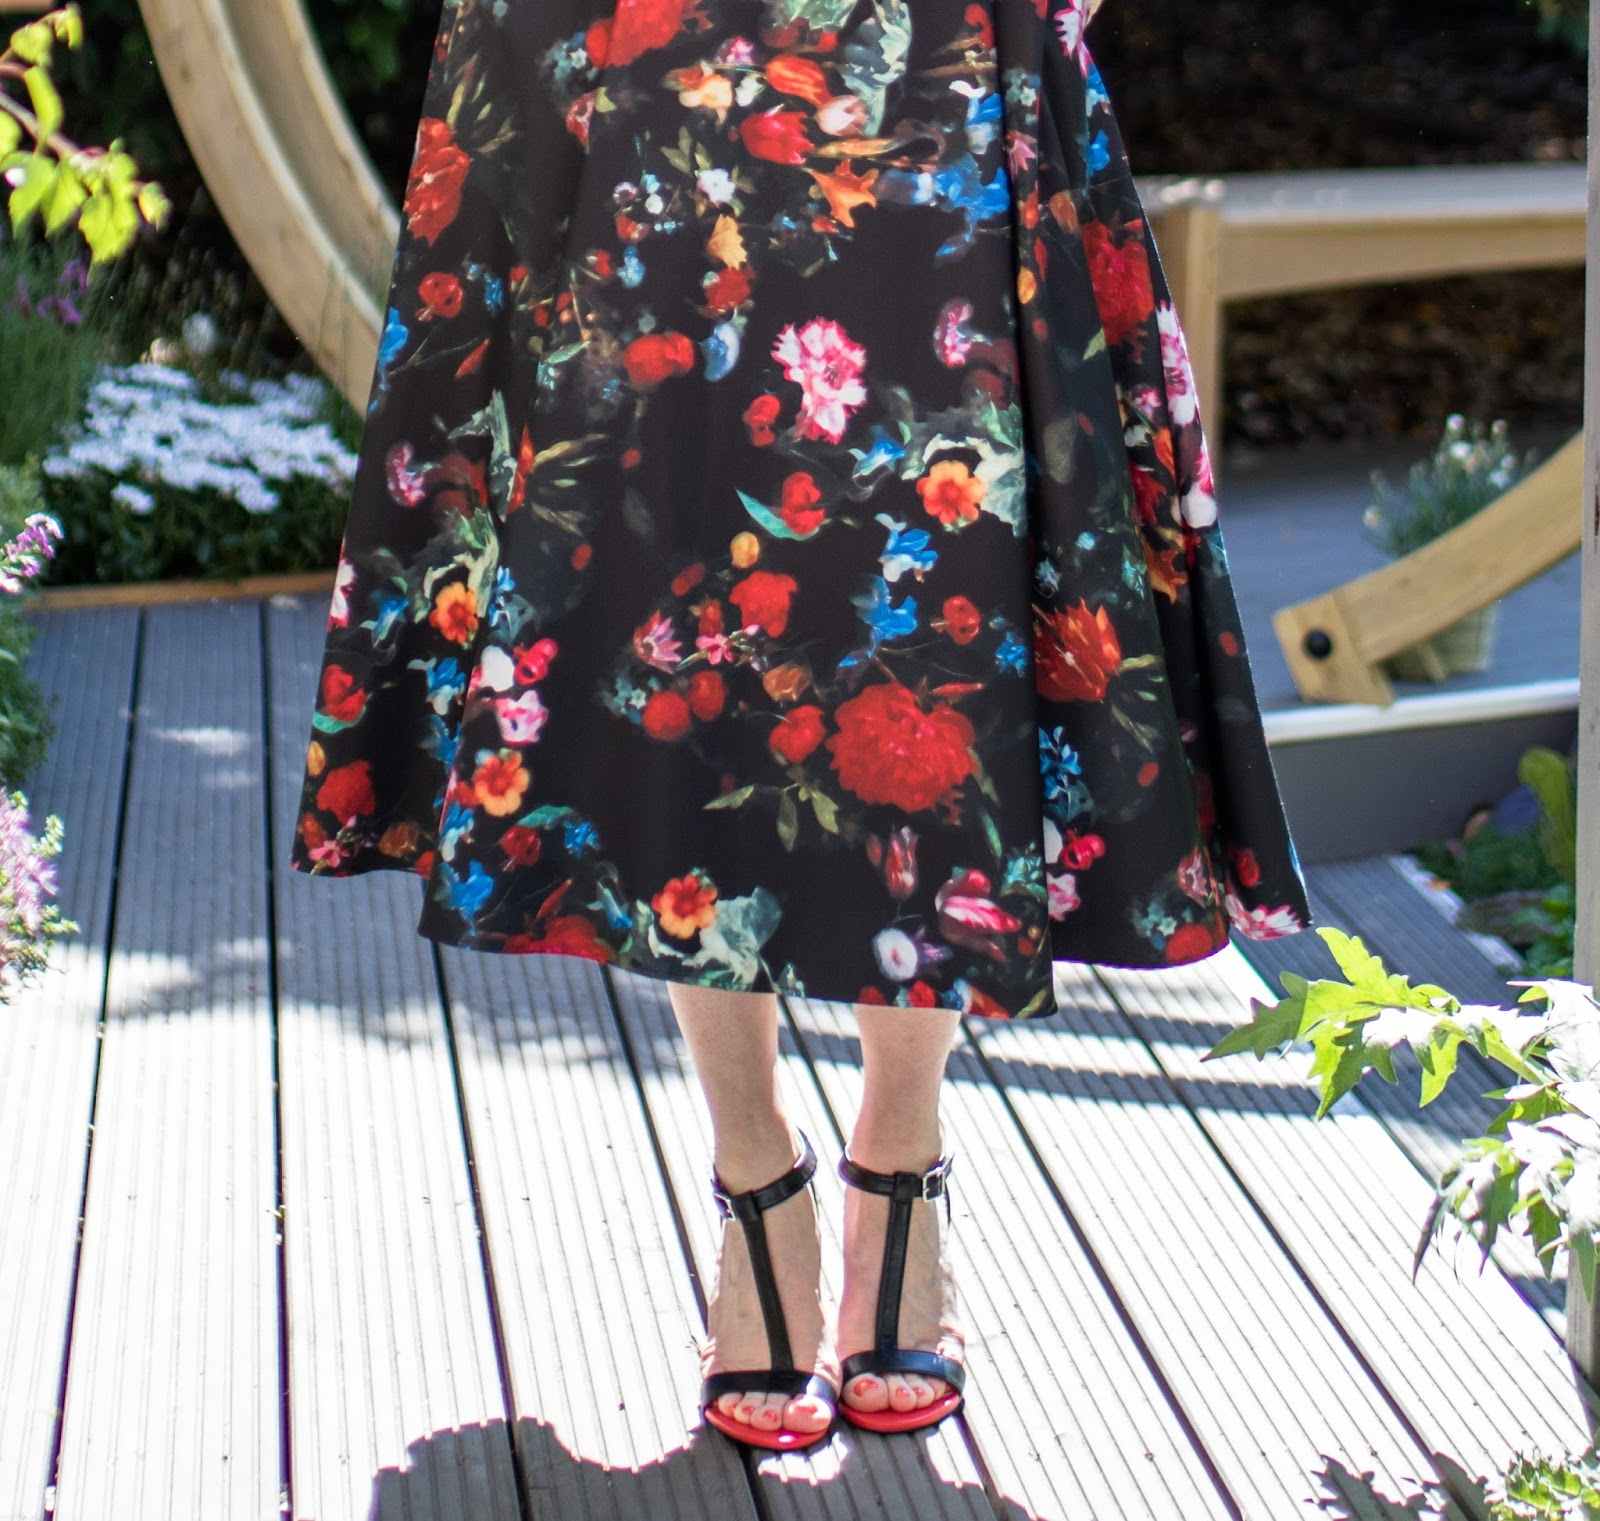 What-Lizzy-Loves-Madeleine-black-floral-peplum-top-matching-floral-midi-skirt-tomato-red-leather high-heeled-sandals-red-orange-leather-biker-jacket-what-to-wear-Chelsea-Flower-Show